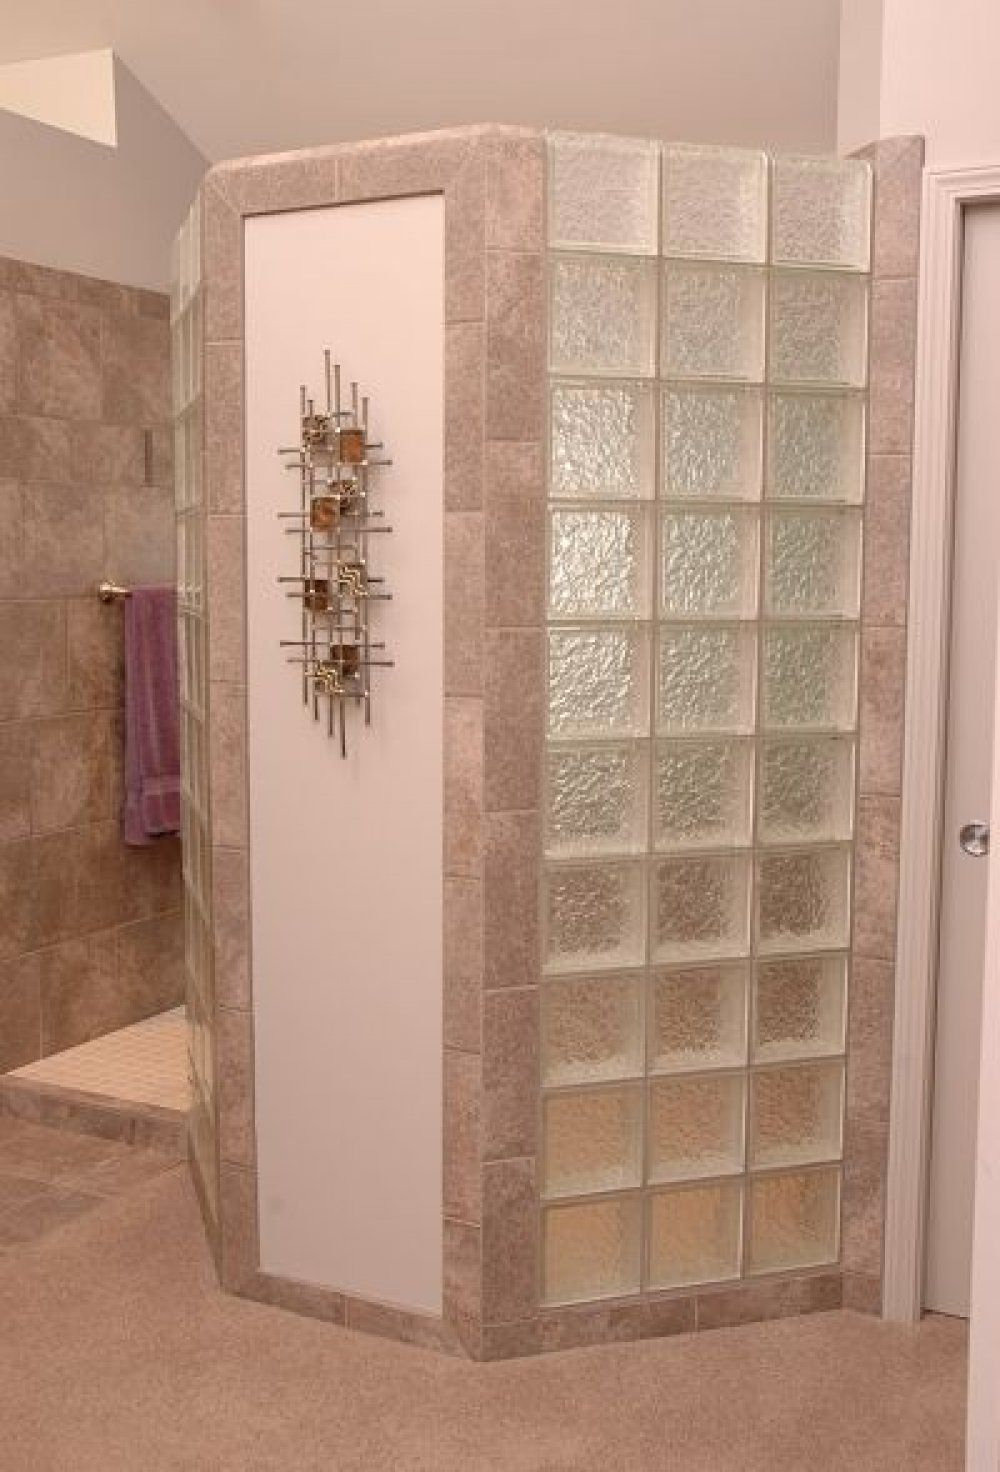 Doorless Shower This Doorless Walk In Shower Design Has A Glass Block Privacy Wall